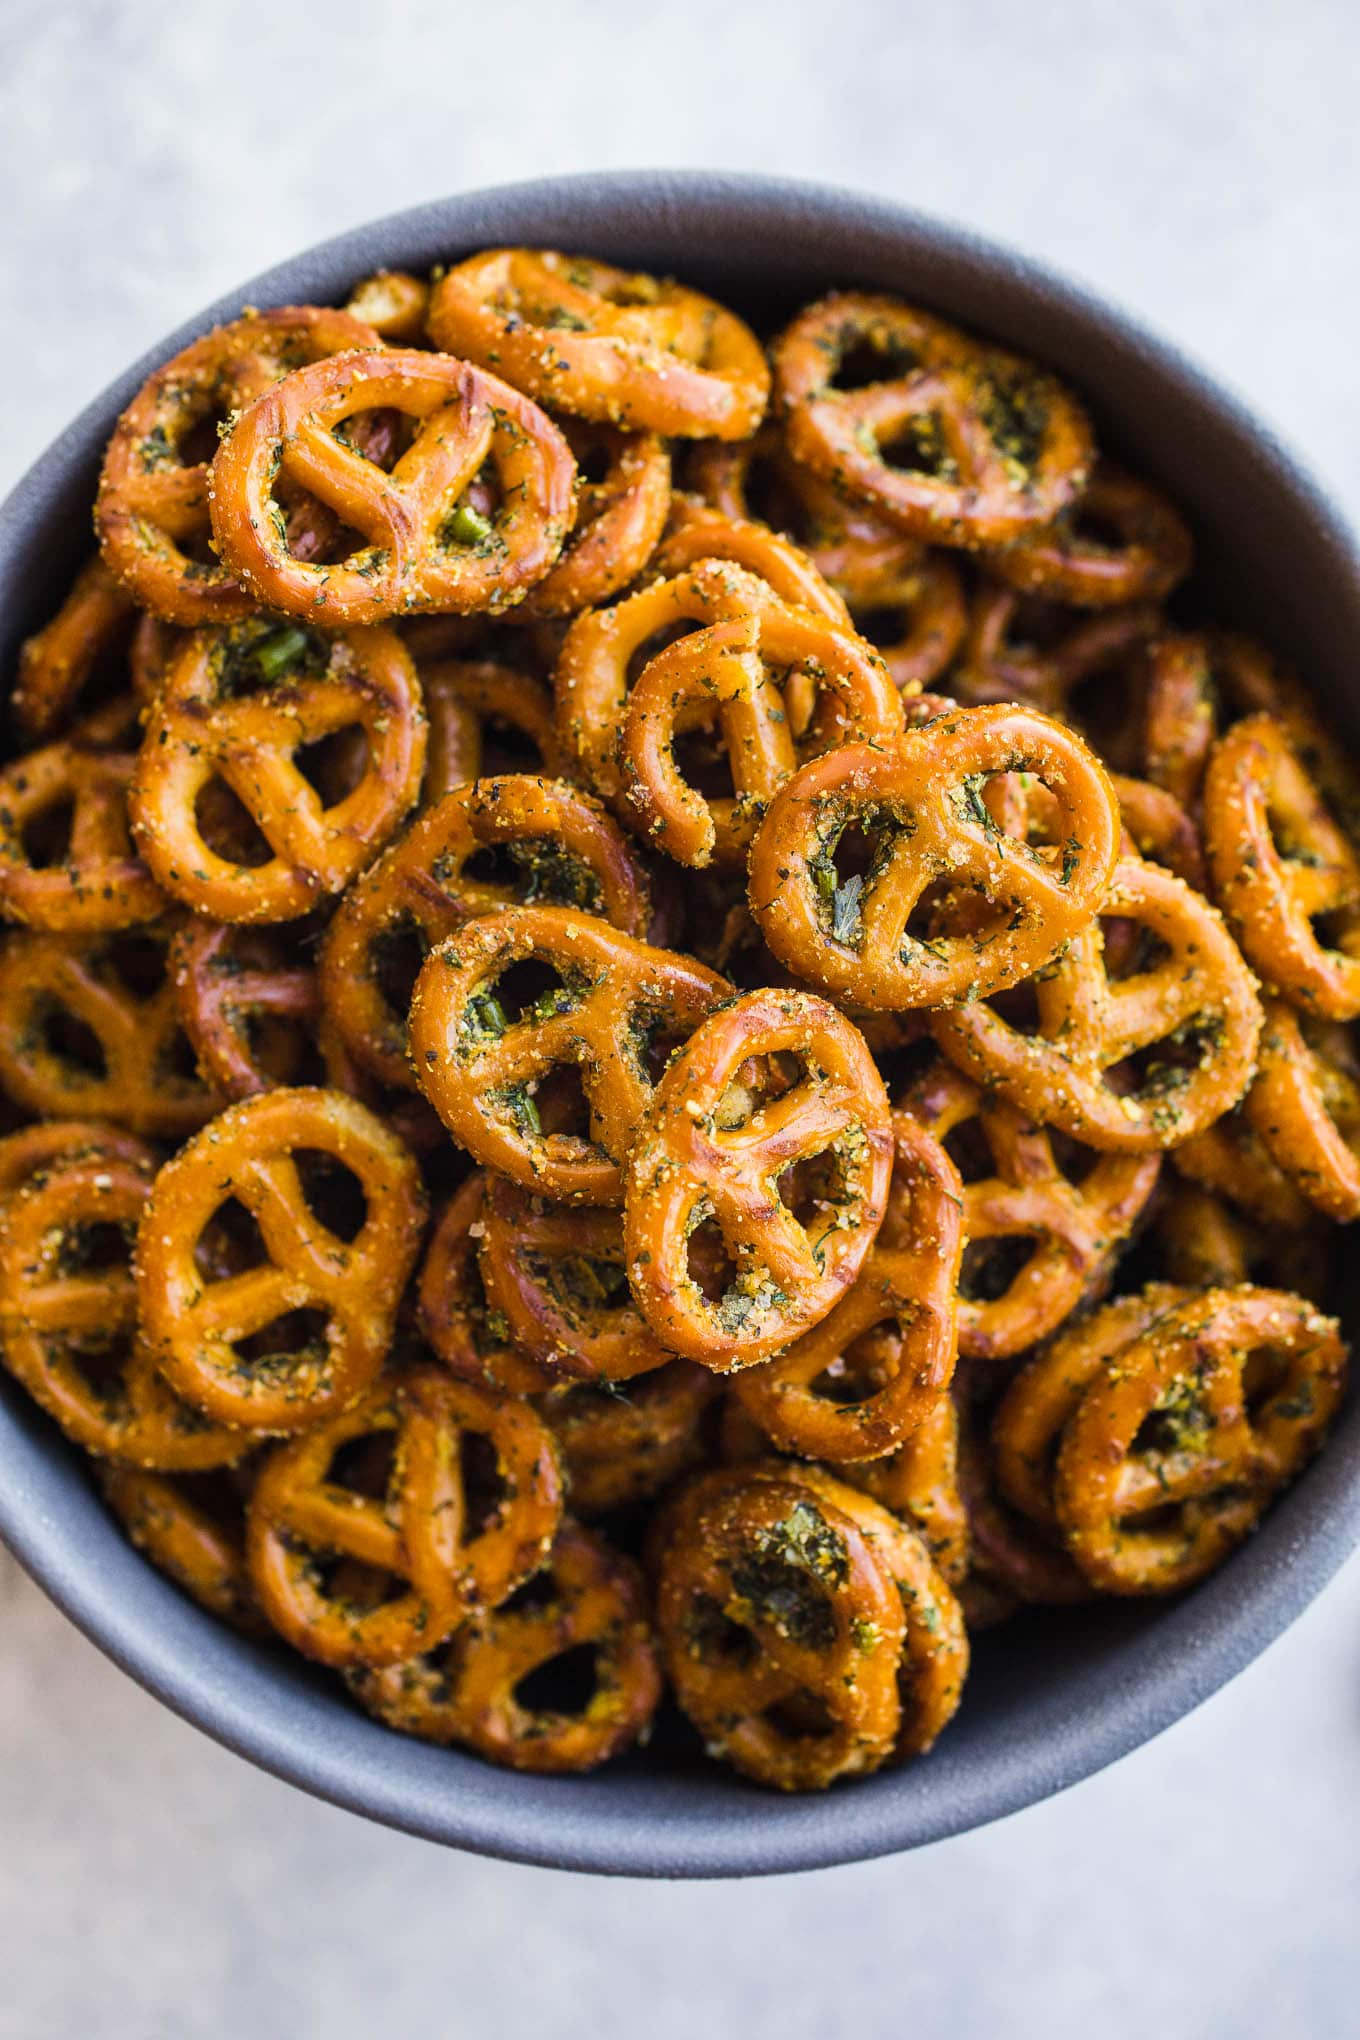 Gluten-Free Seasoned Pretzels made with olive oil, herbs, and nutritional yeast for an easy homemade snack recipe. Vegan.